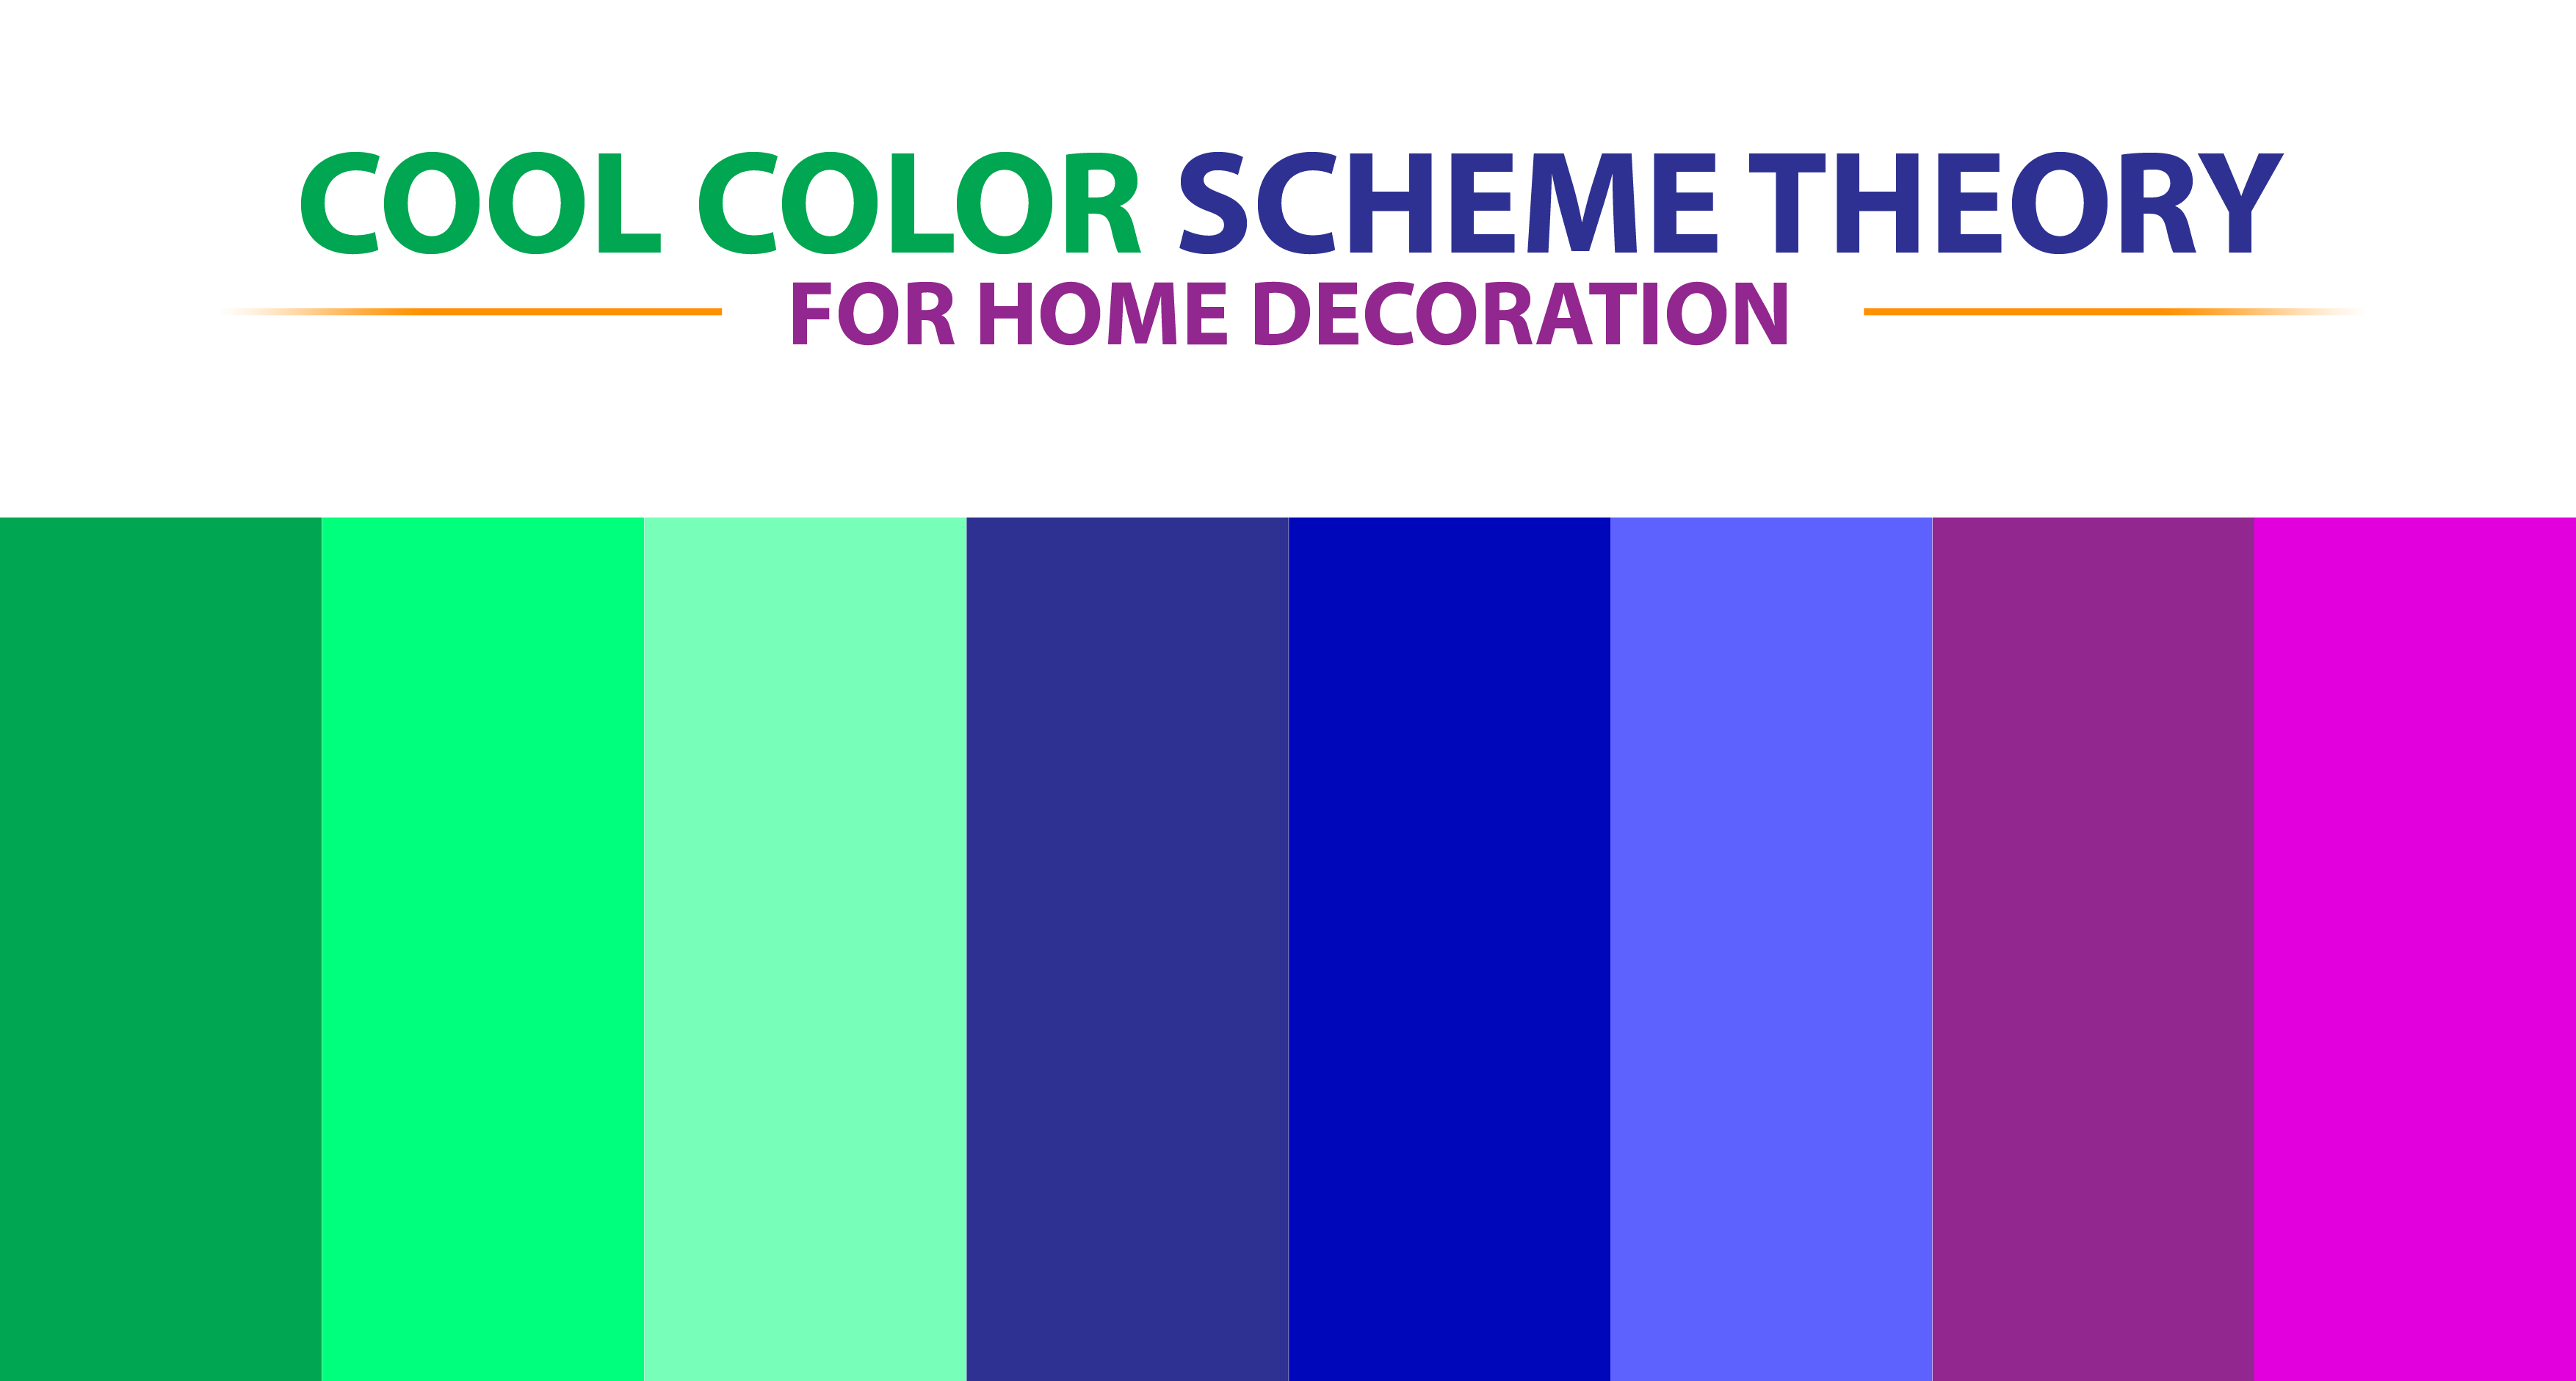 Cool Color Scheme Theory for Home Decoration | Roy Home Design